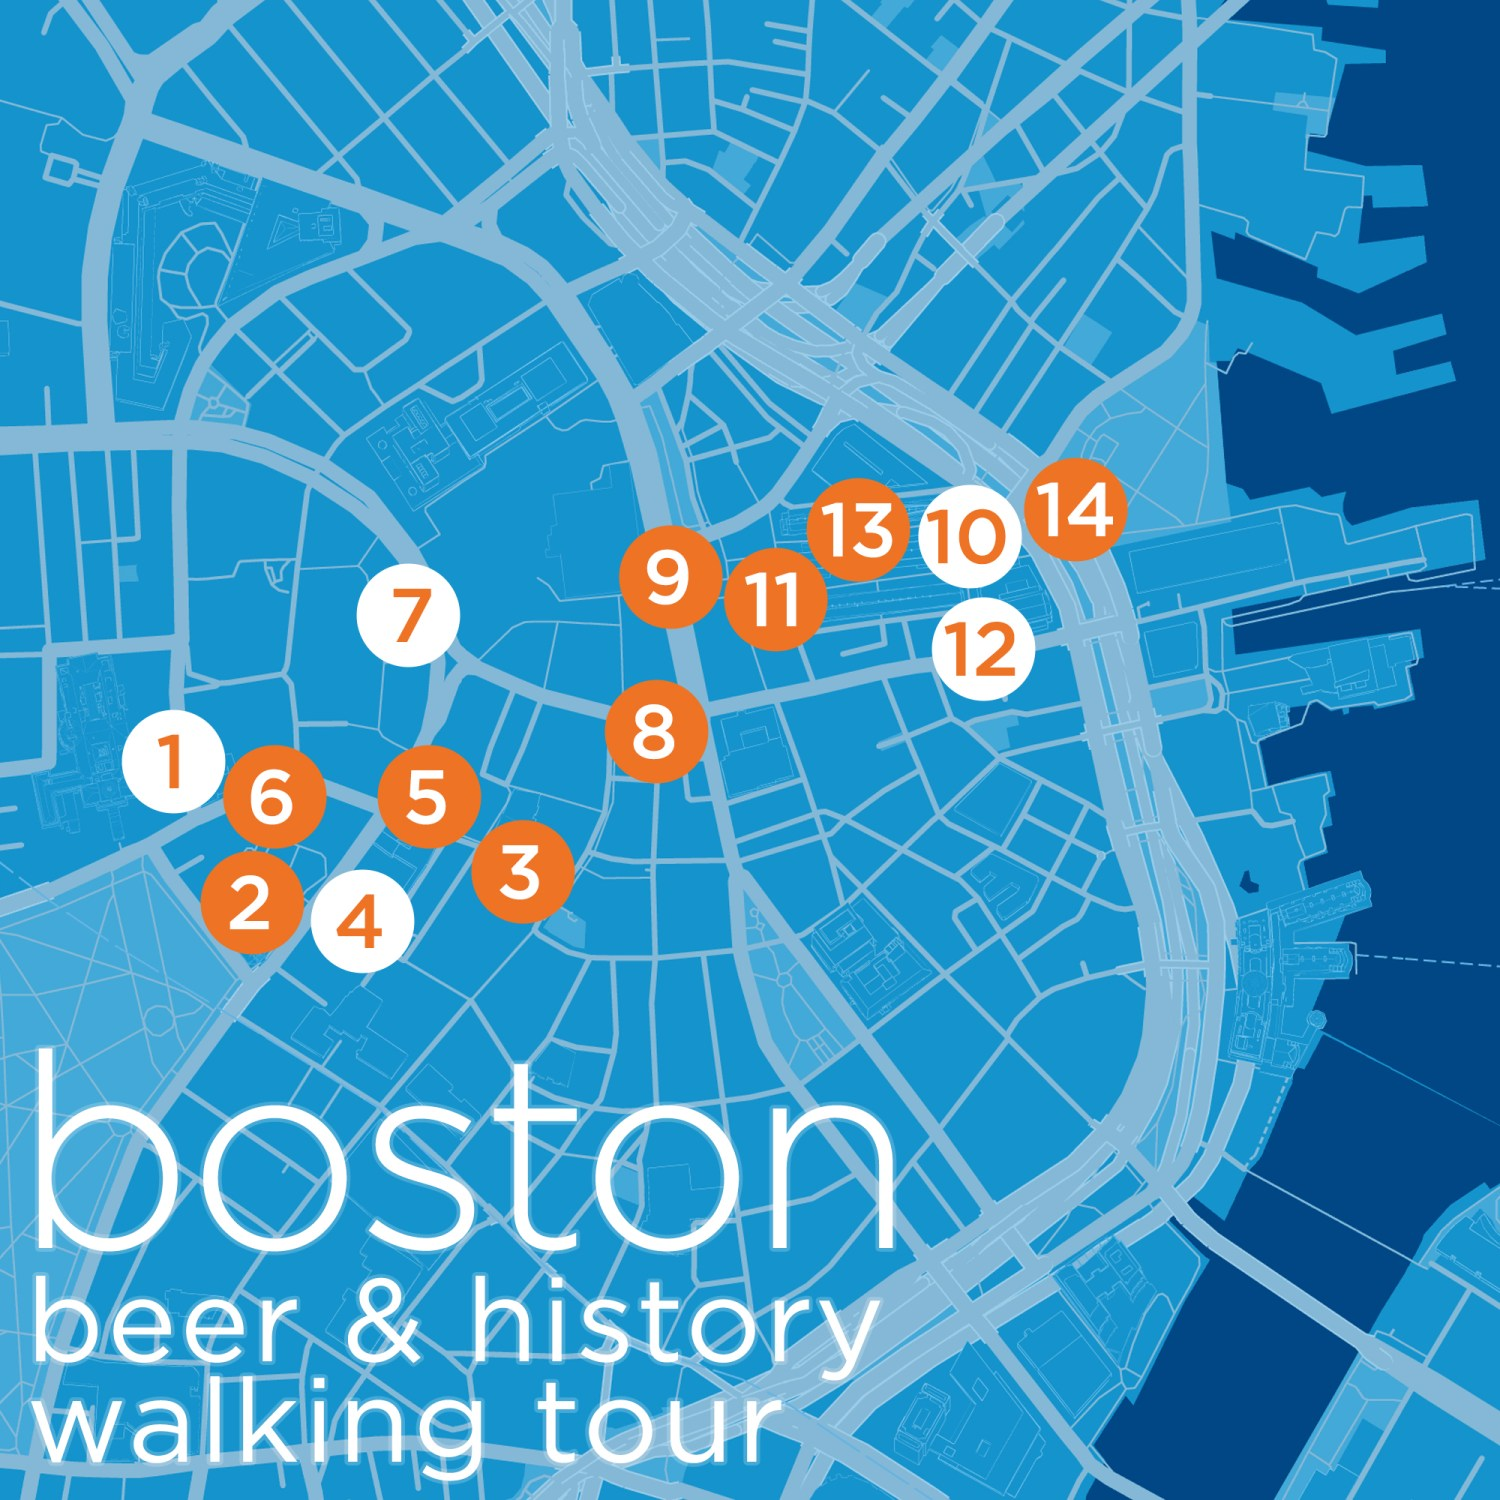 Boston Low-Key Watering Holes/History Tour [Map]